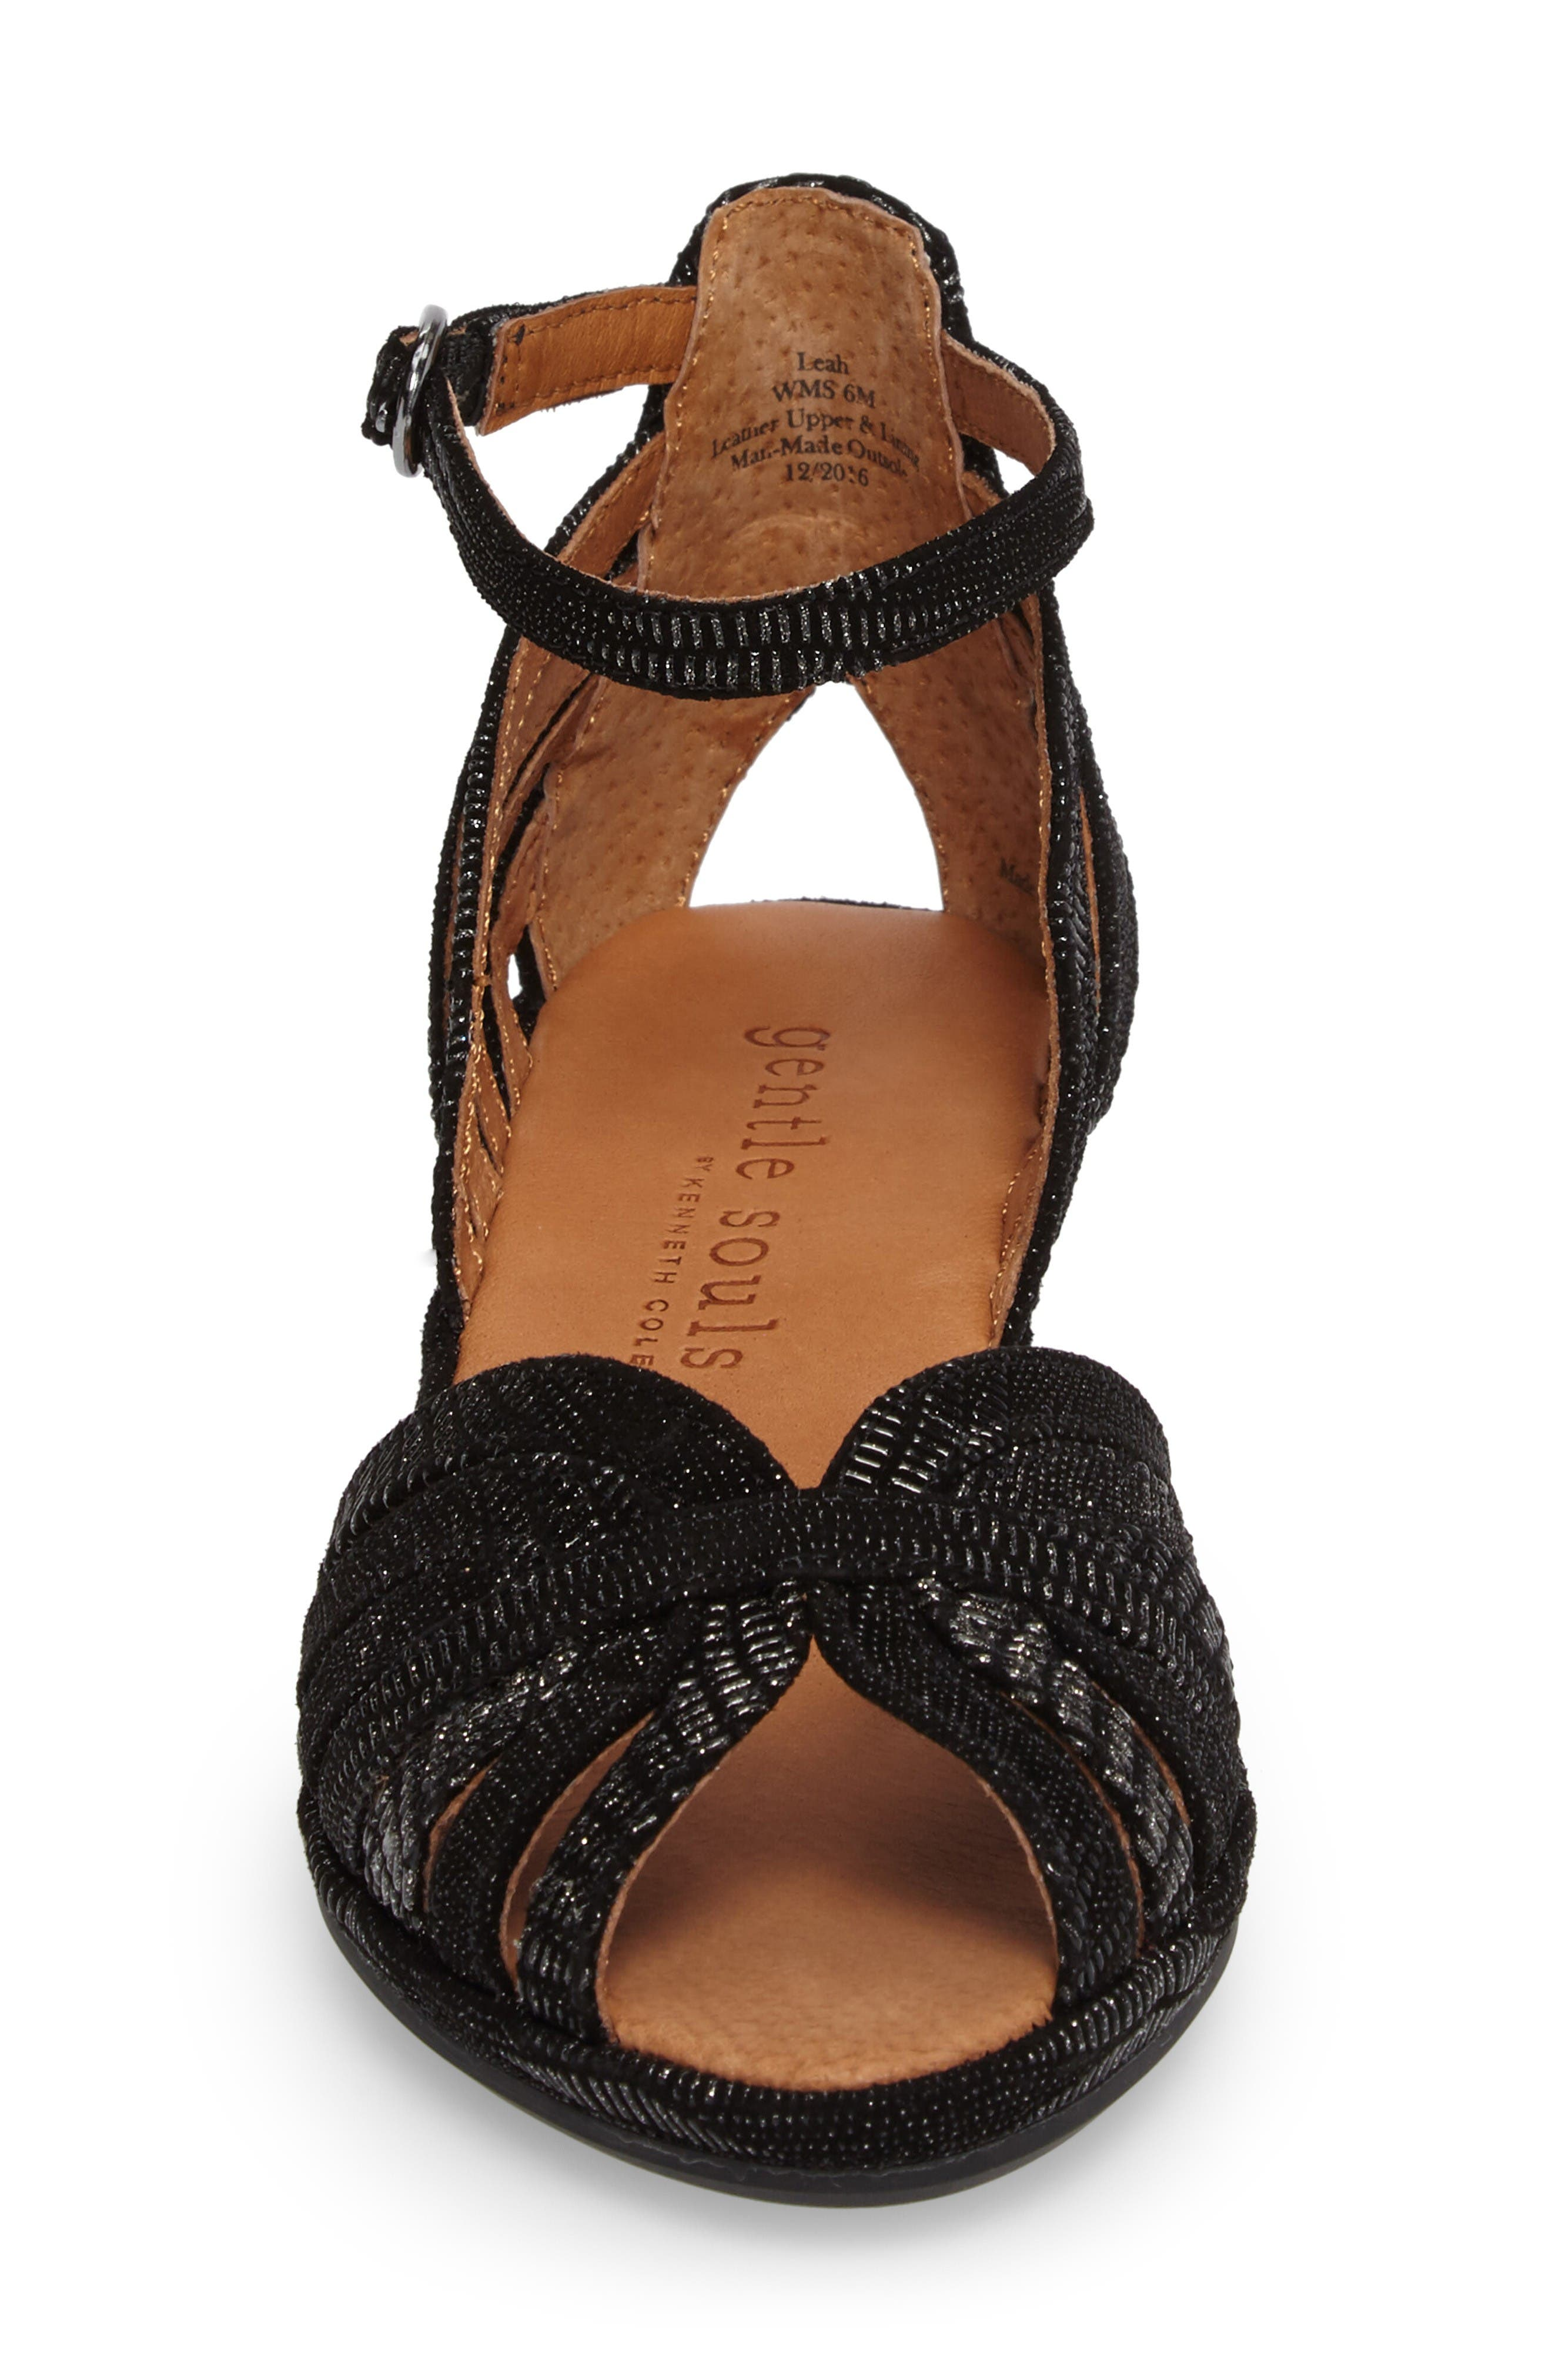 by Kenneth Cole 'Leah' Peep Toe Wedge Sandal,                             Alternate thumbnail 4, color,                             Black/ Black Leather